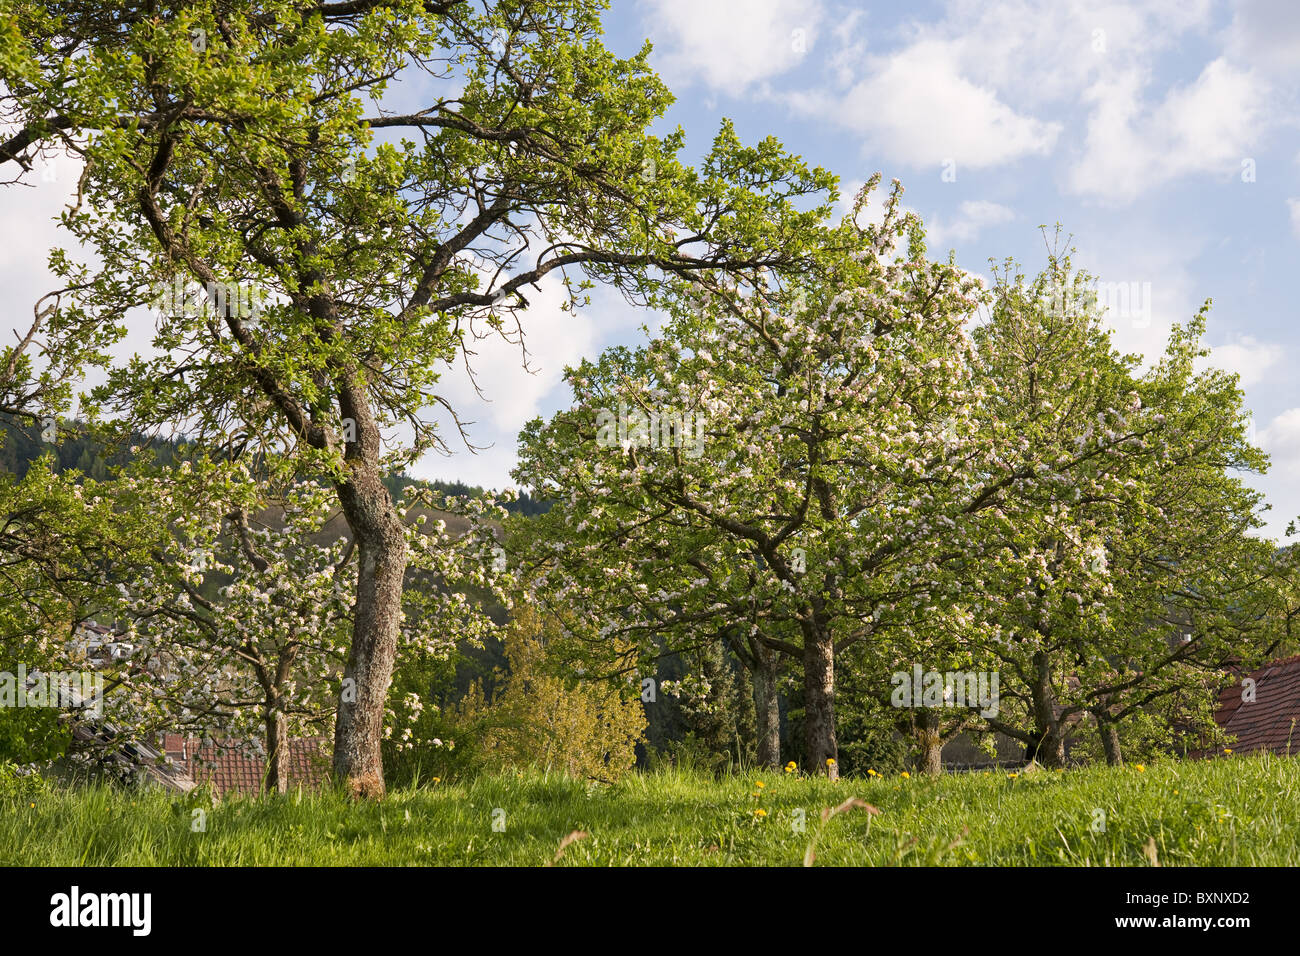 thriving fruit trees - Stock Image